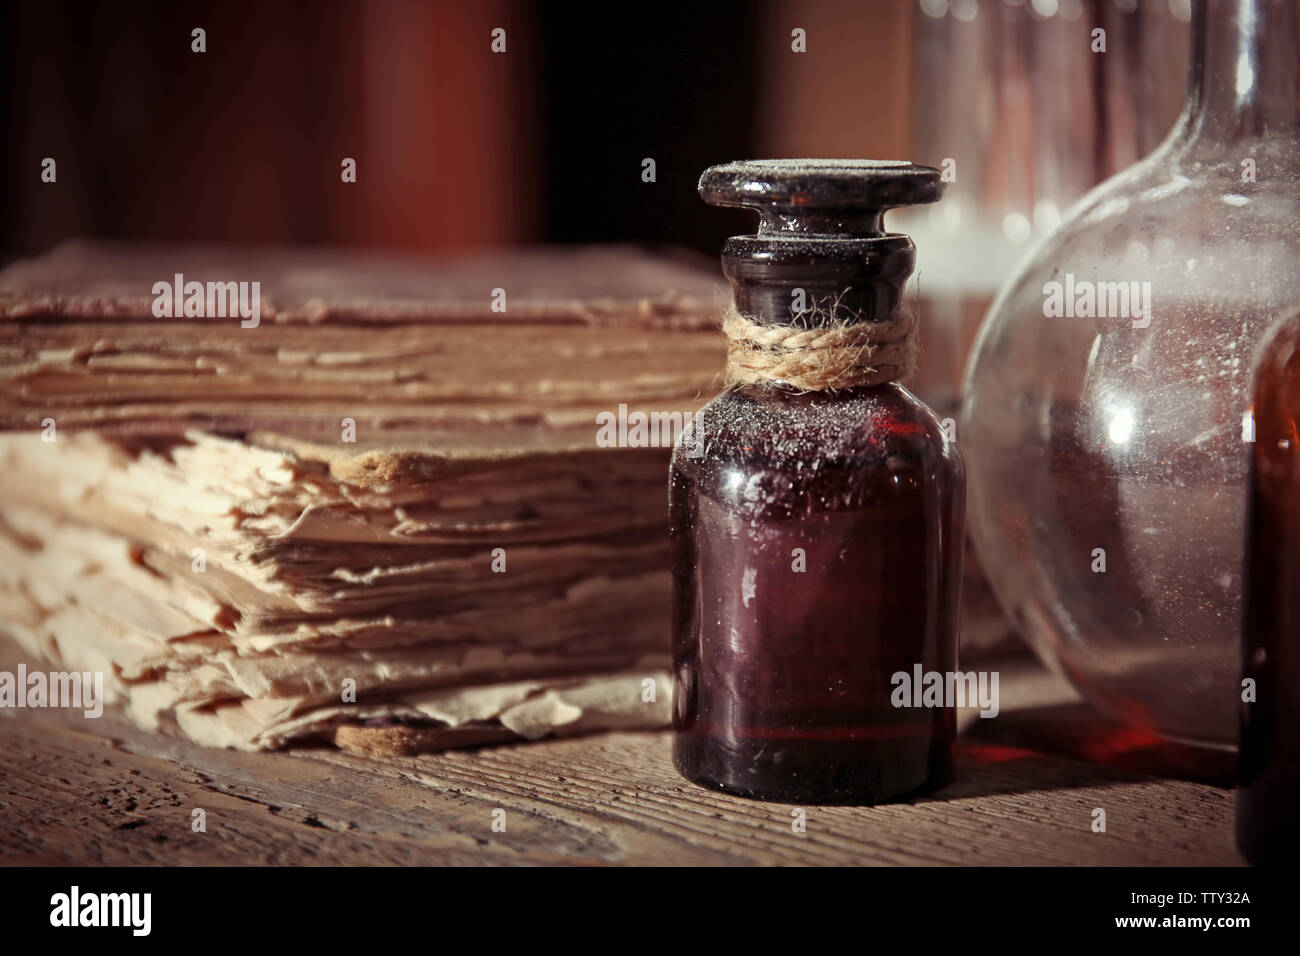 Vintage glass bottle with old books on wooden table, closeup - Stock Image